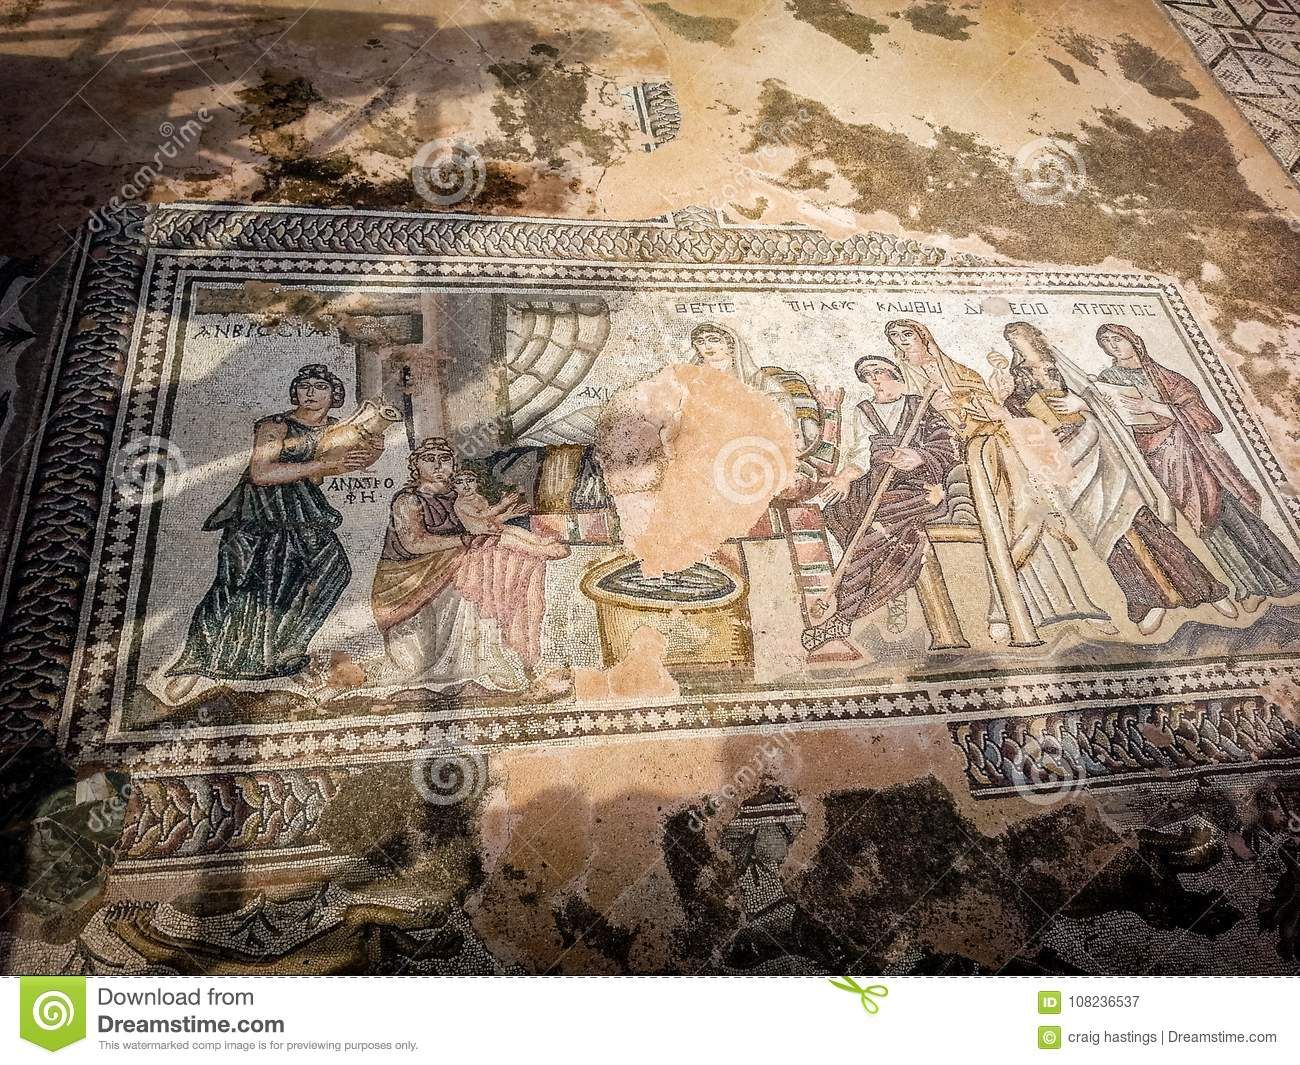 Ancient Mosaics from paphos in Cyprus